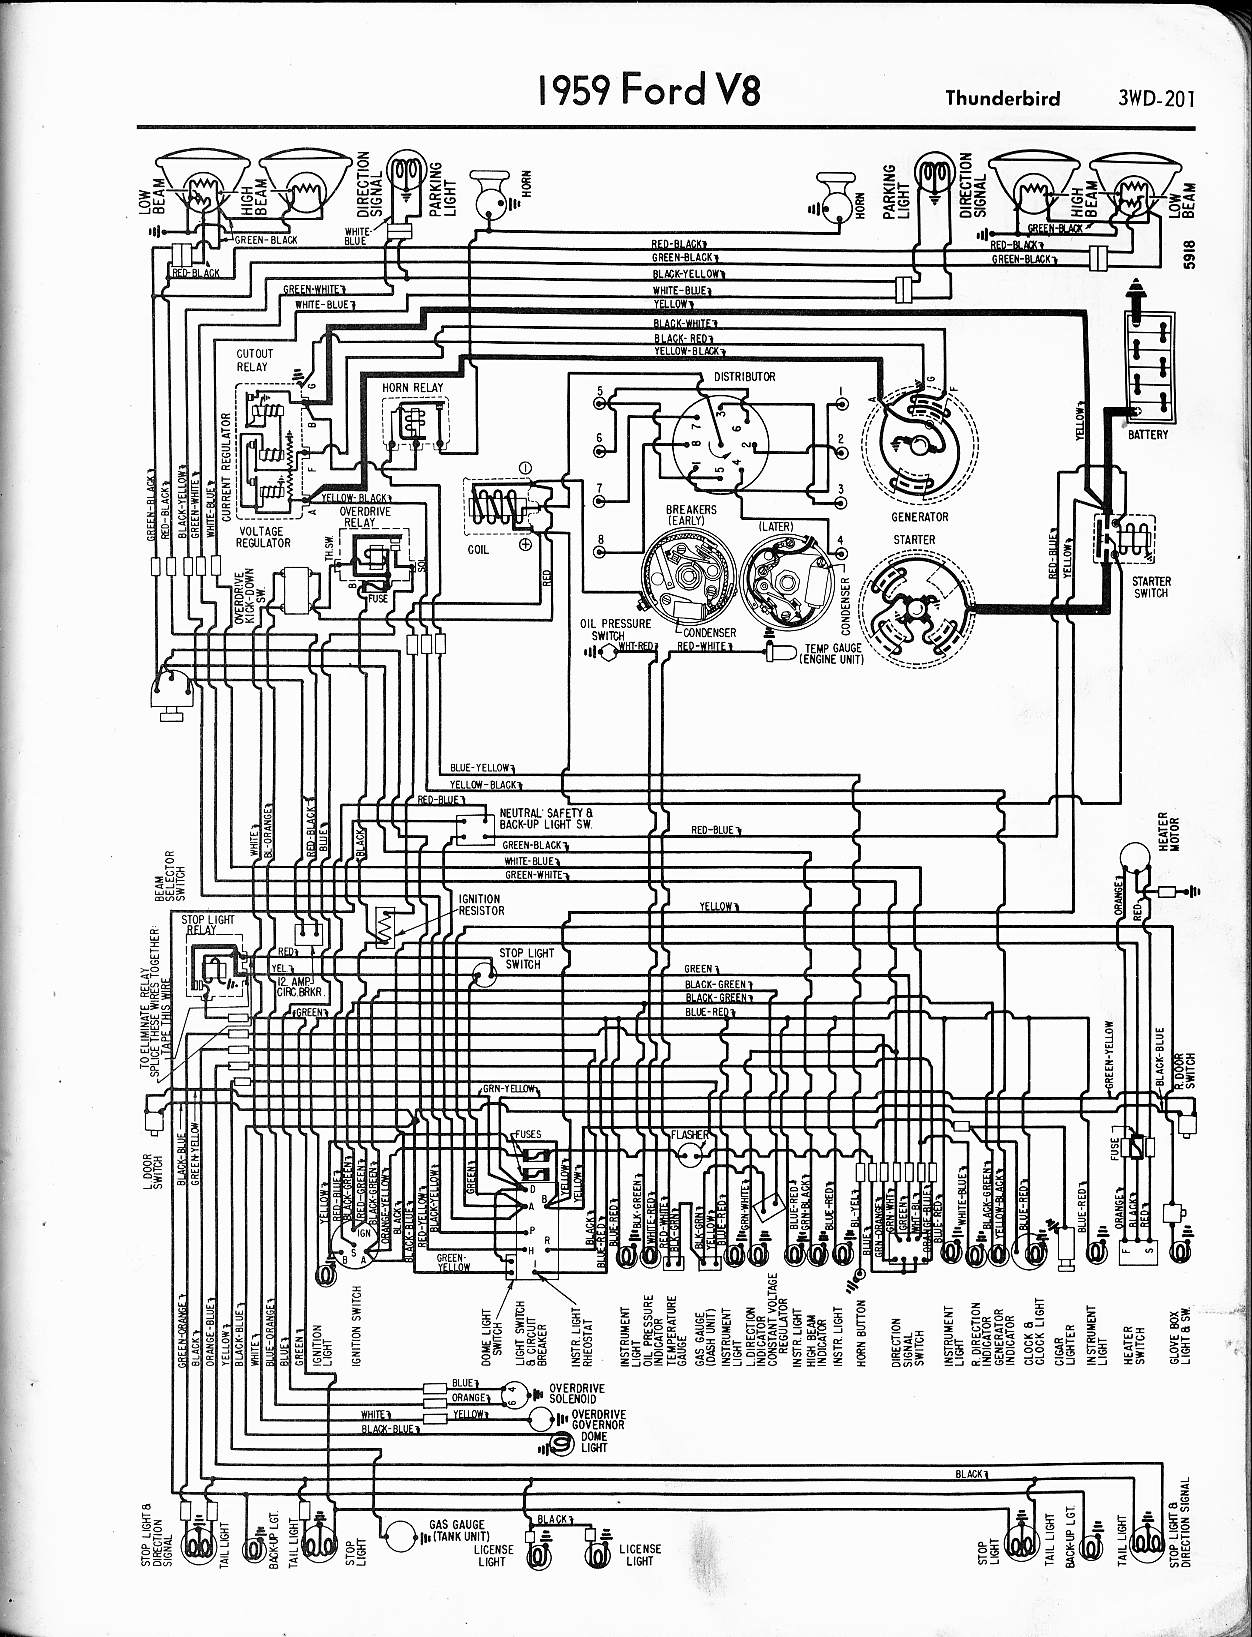 MWire5765 201 57 65 ford wiring diagrams Ford Schematics at bayanpartner.co